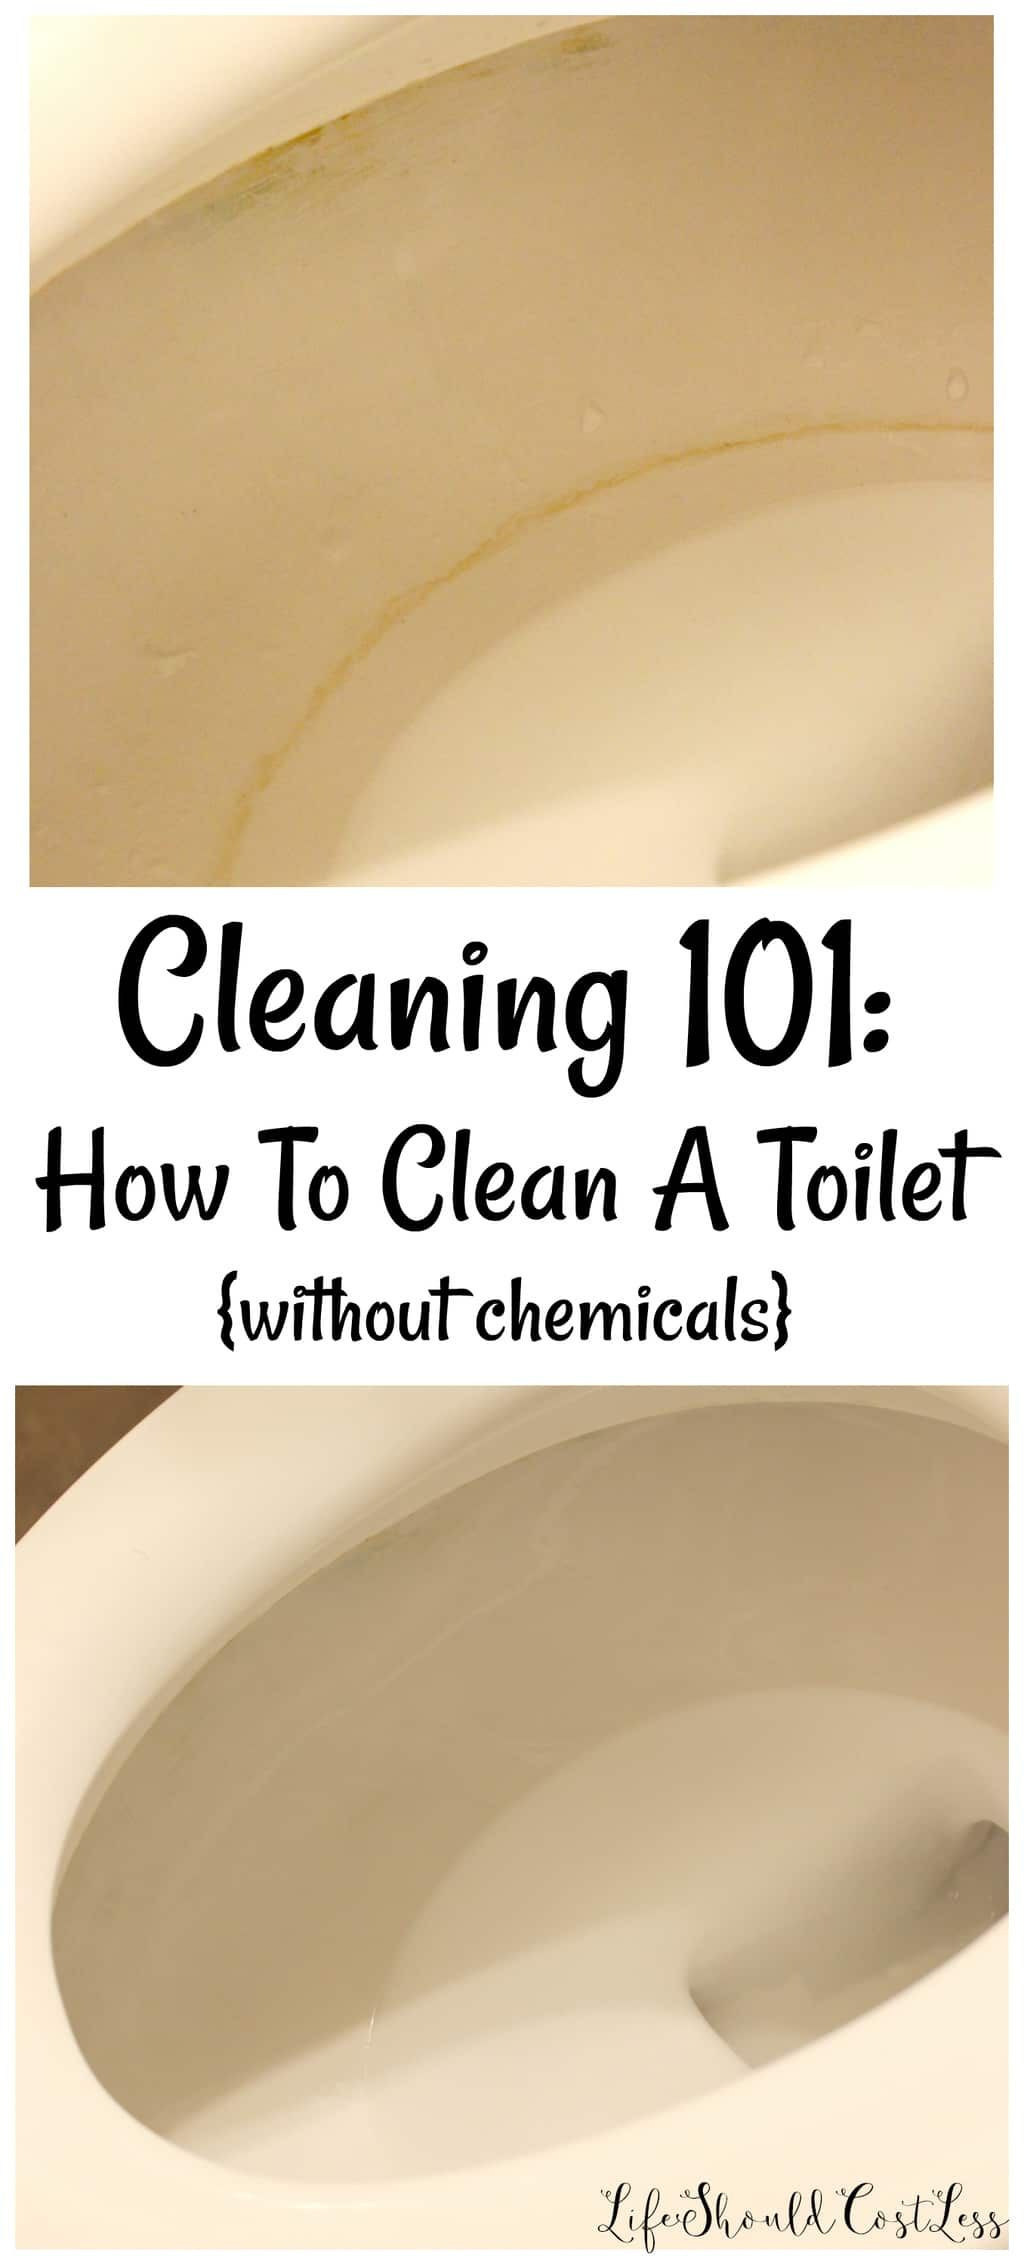 Cleaning How To Clean A Toilet without chemicals Life